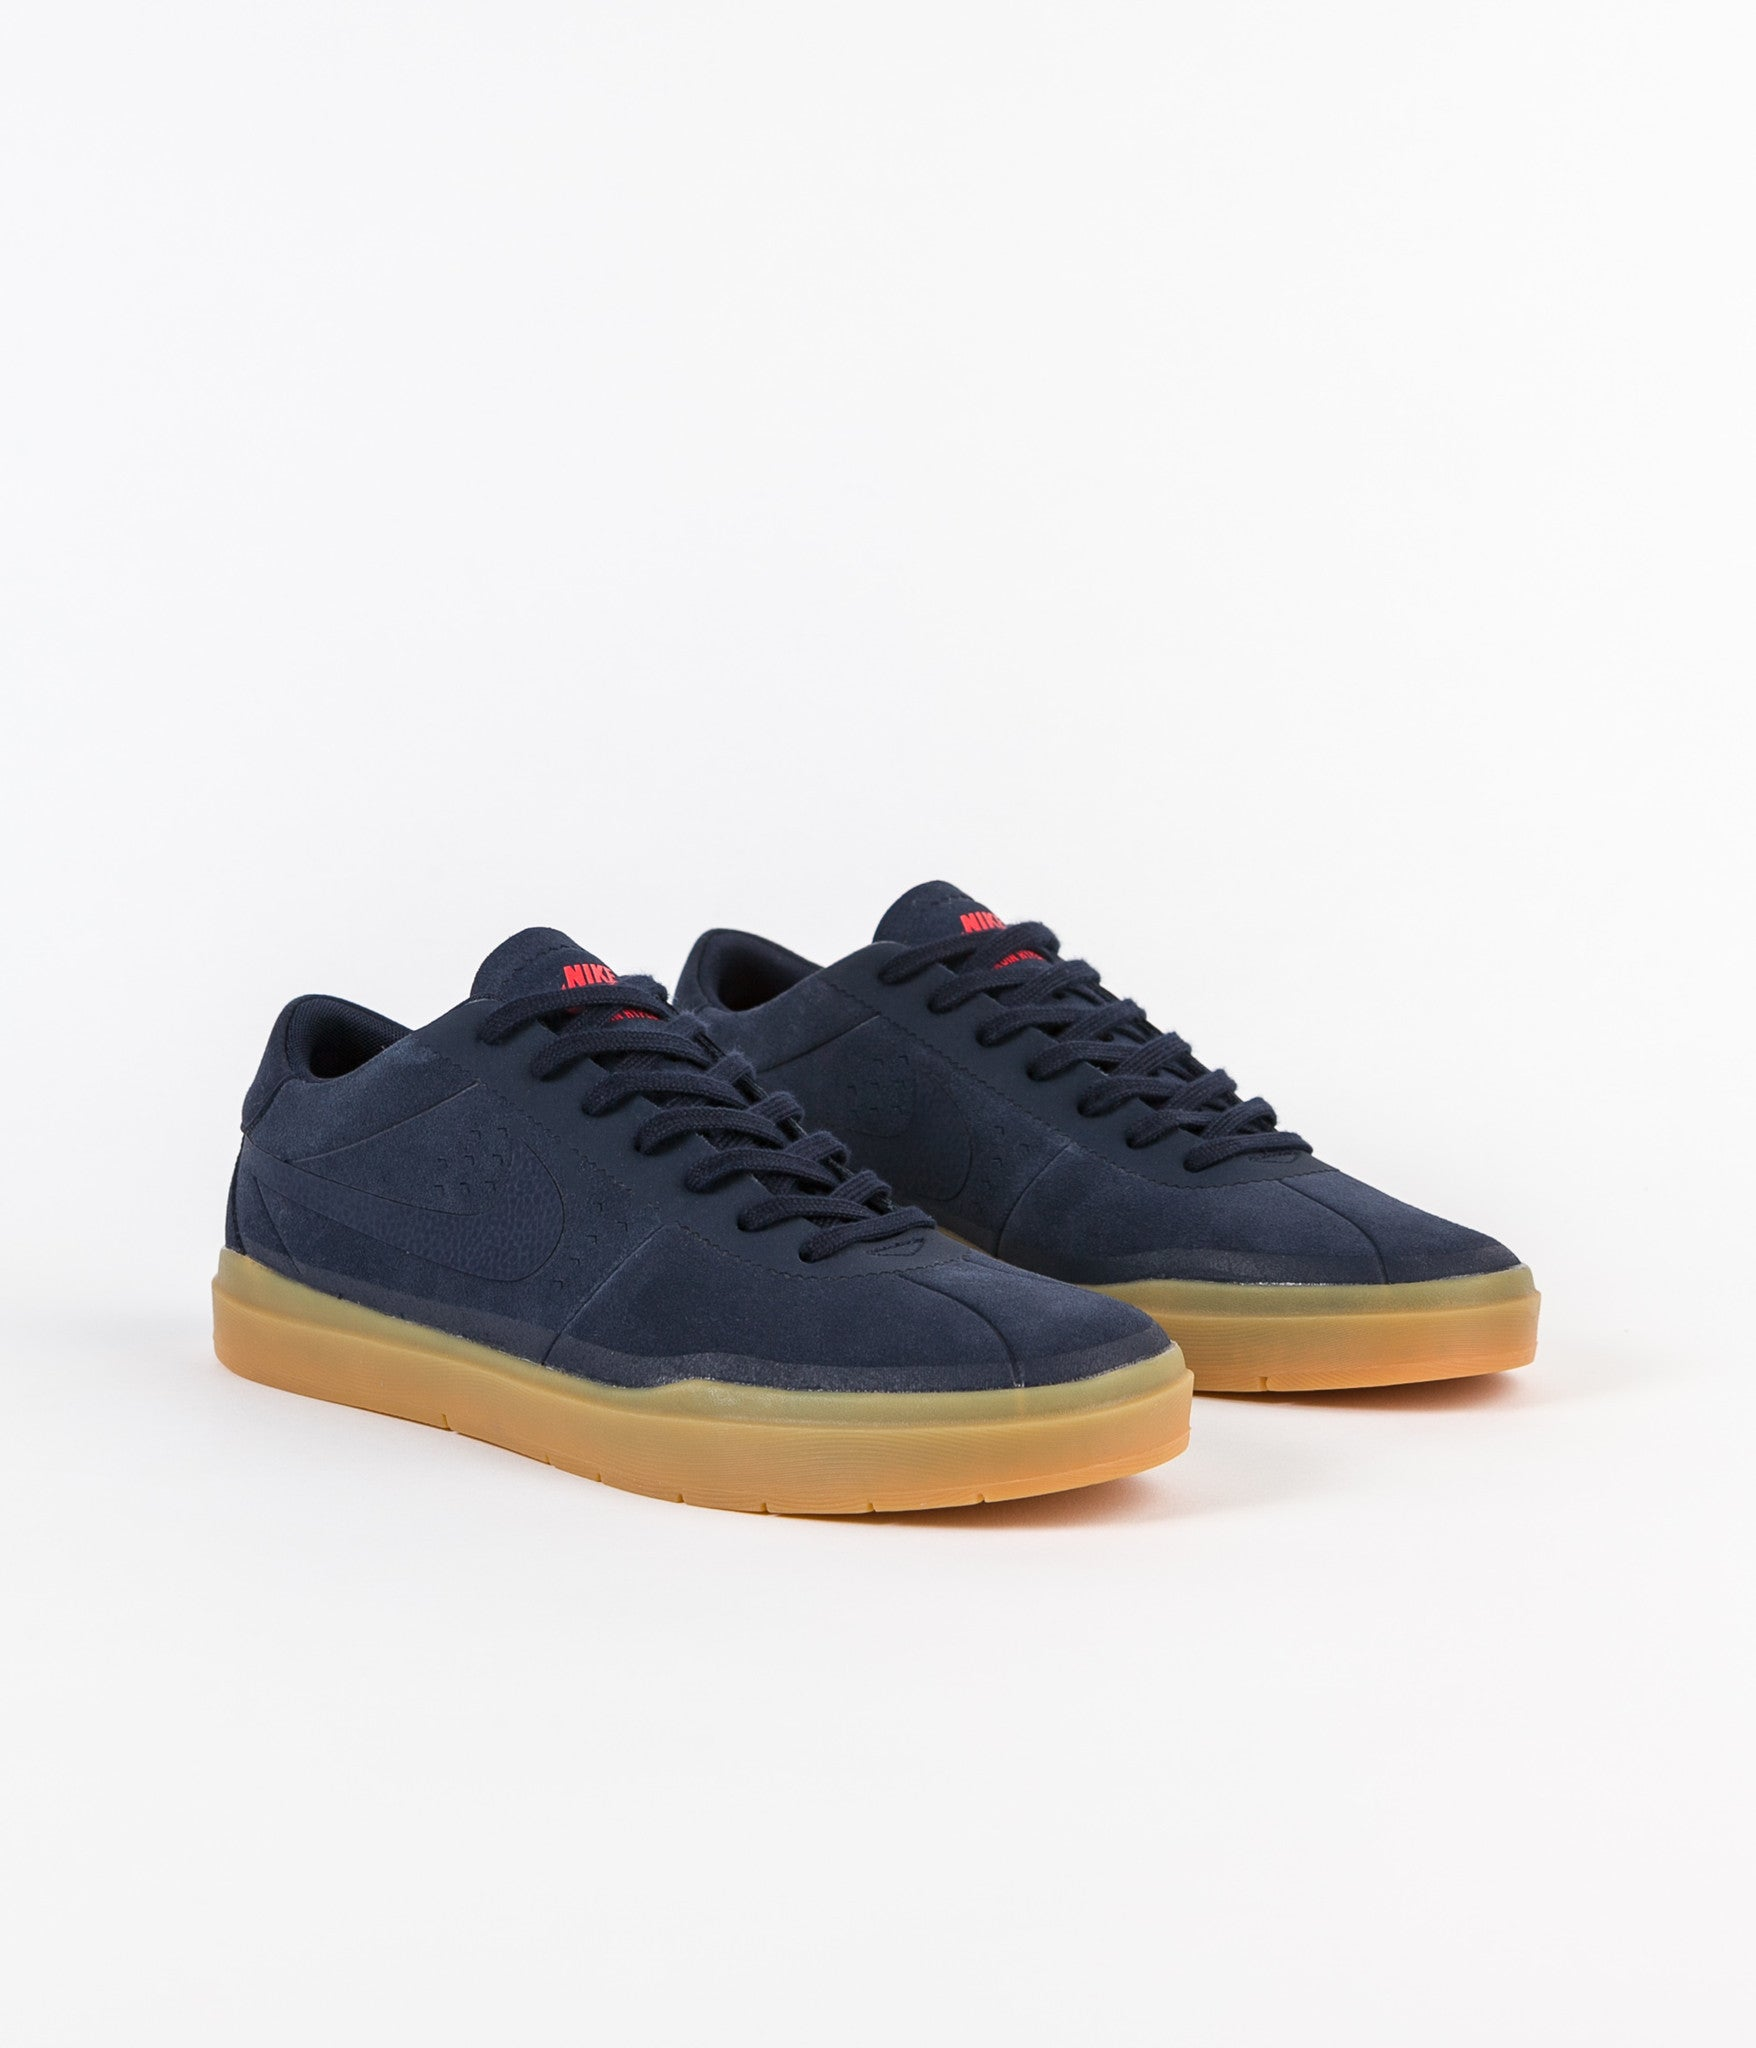 ... Nike SB Bruin Hyperfeel Shoes - Obsidian / Obsidian - Gum Light Brown  ...